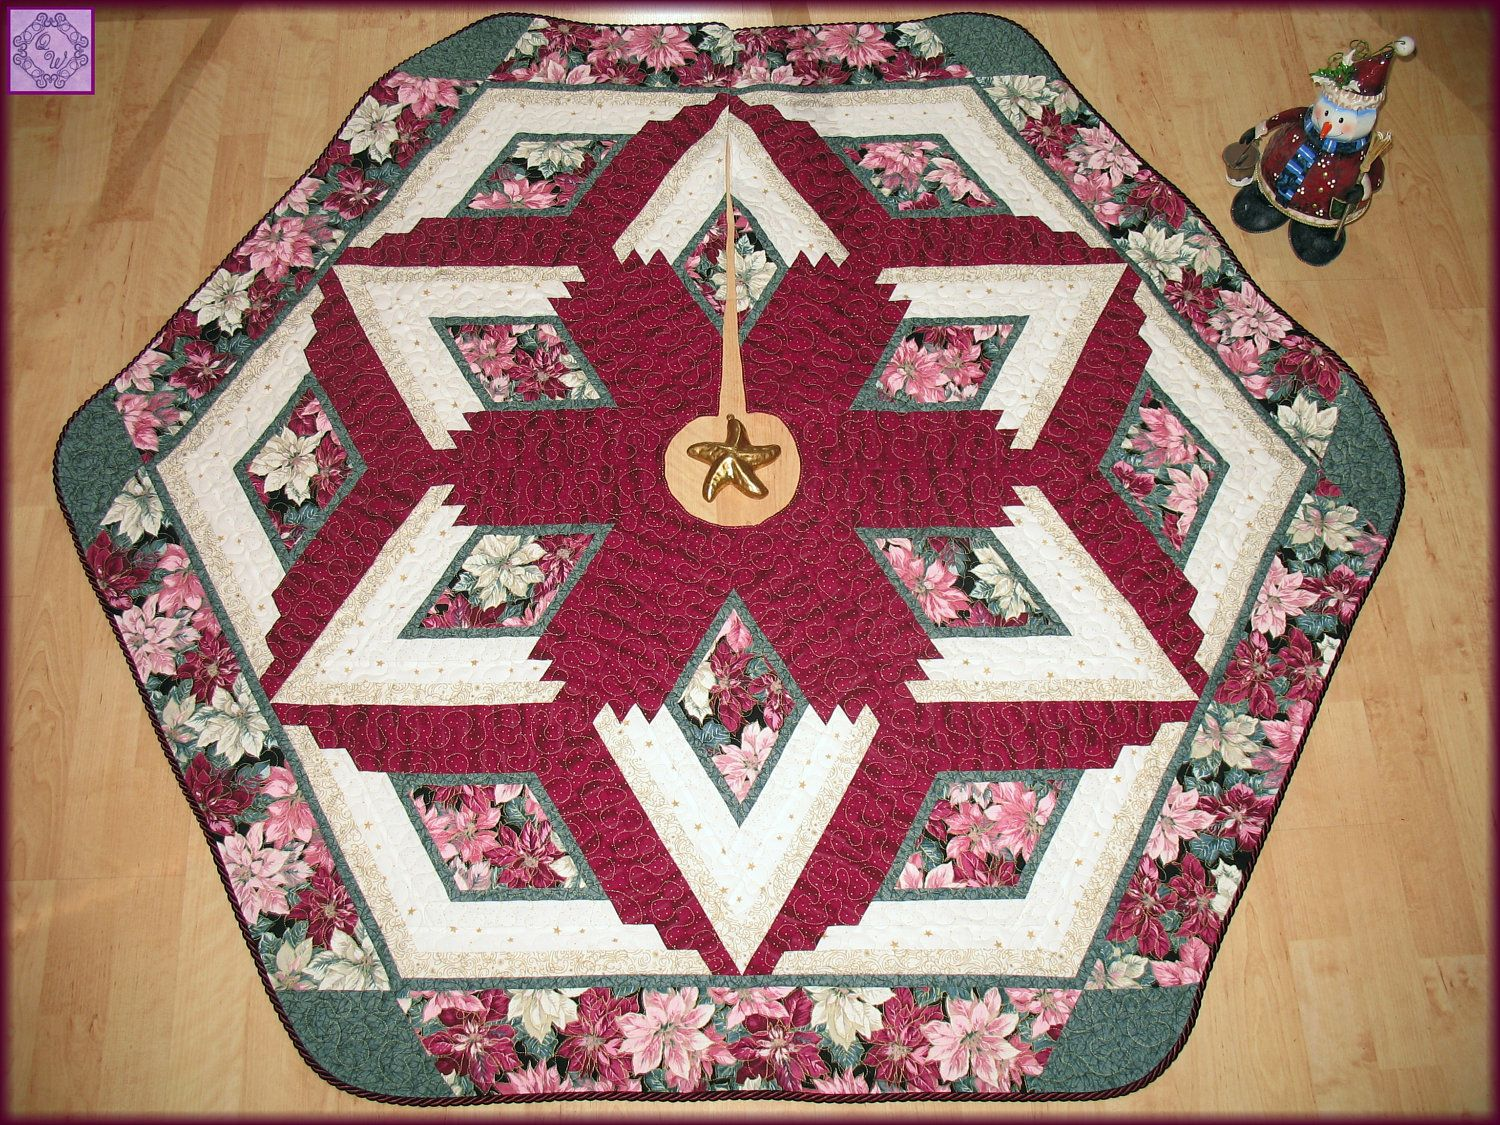 Christmas Tree Skirt Quilt Patterns Best Decorating